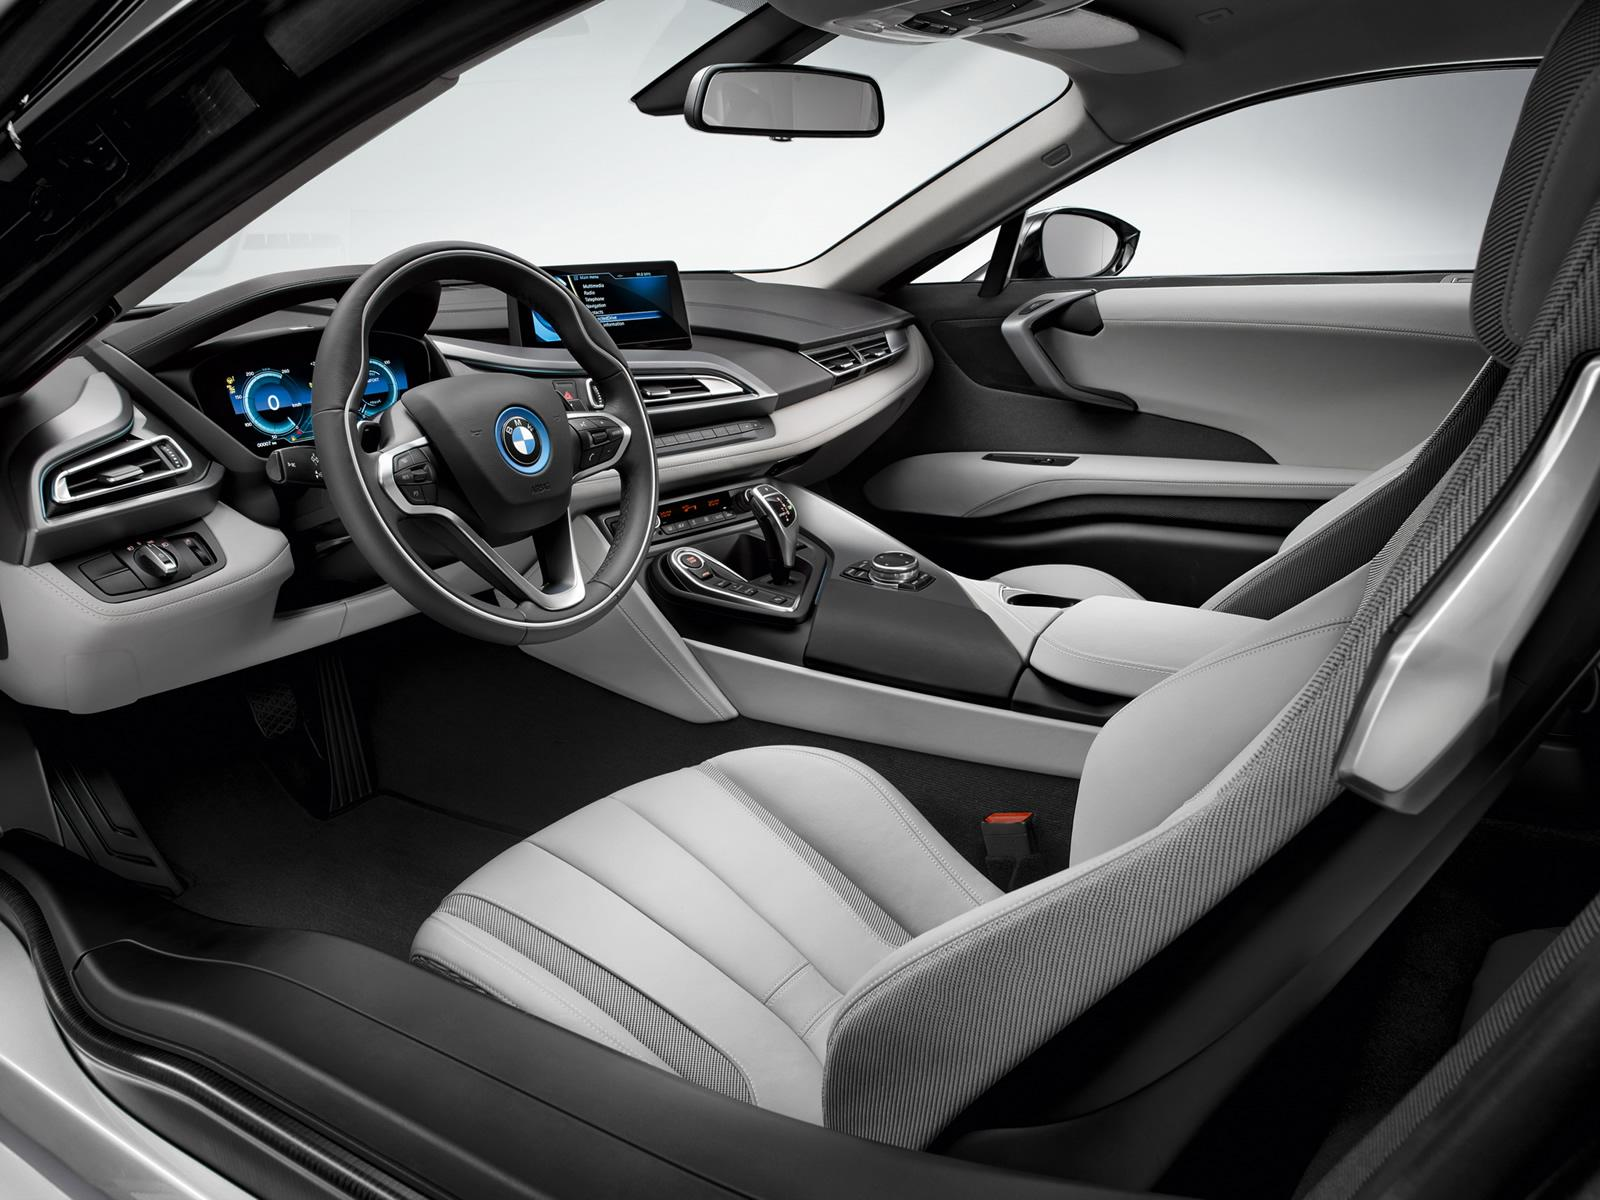 2014 Bmw I8 Production Model Breaks Cover Autoevolution